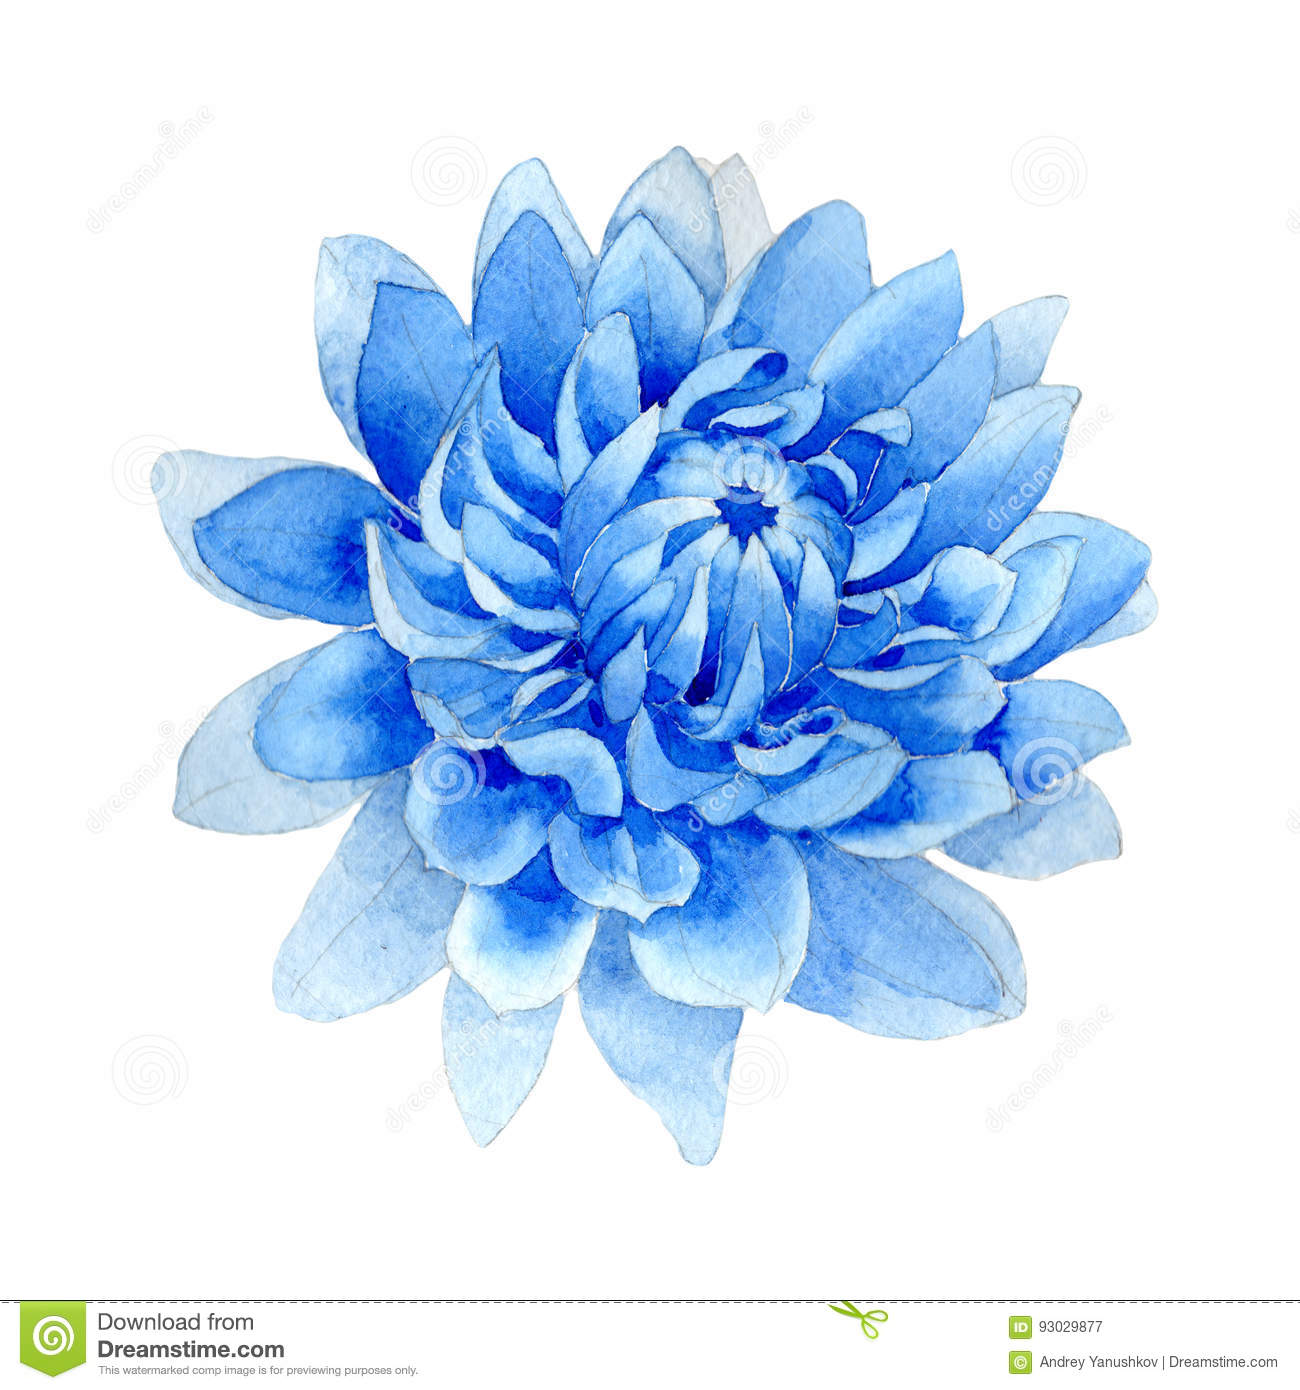 Wildflower blue dahila flower in a watercolor style isolated.